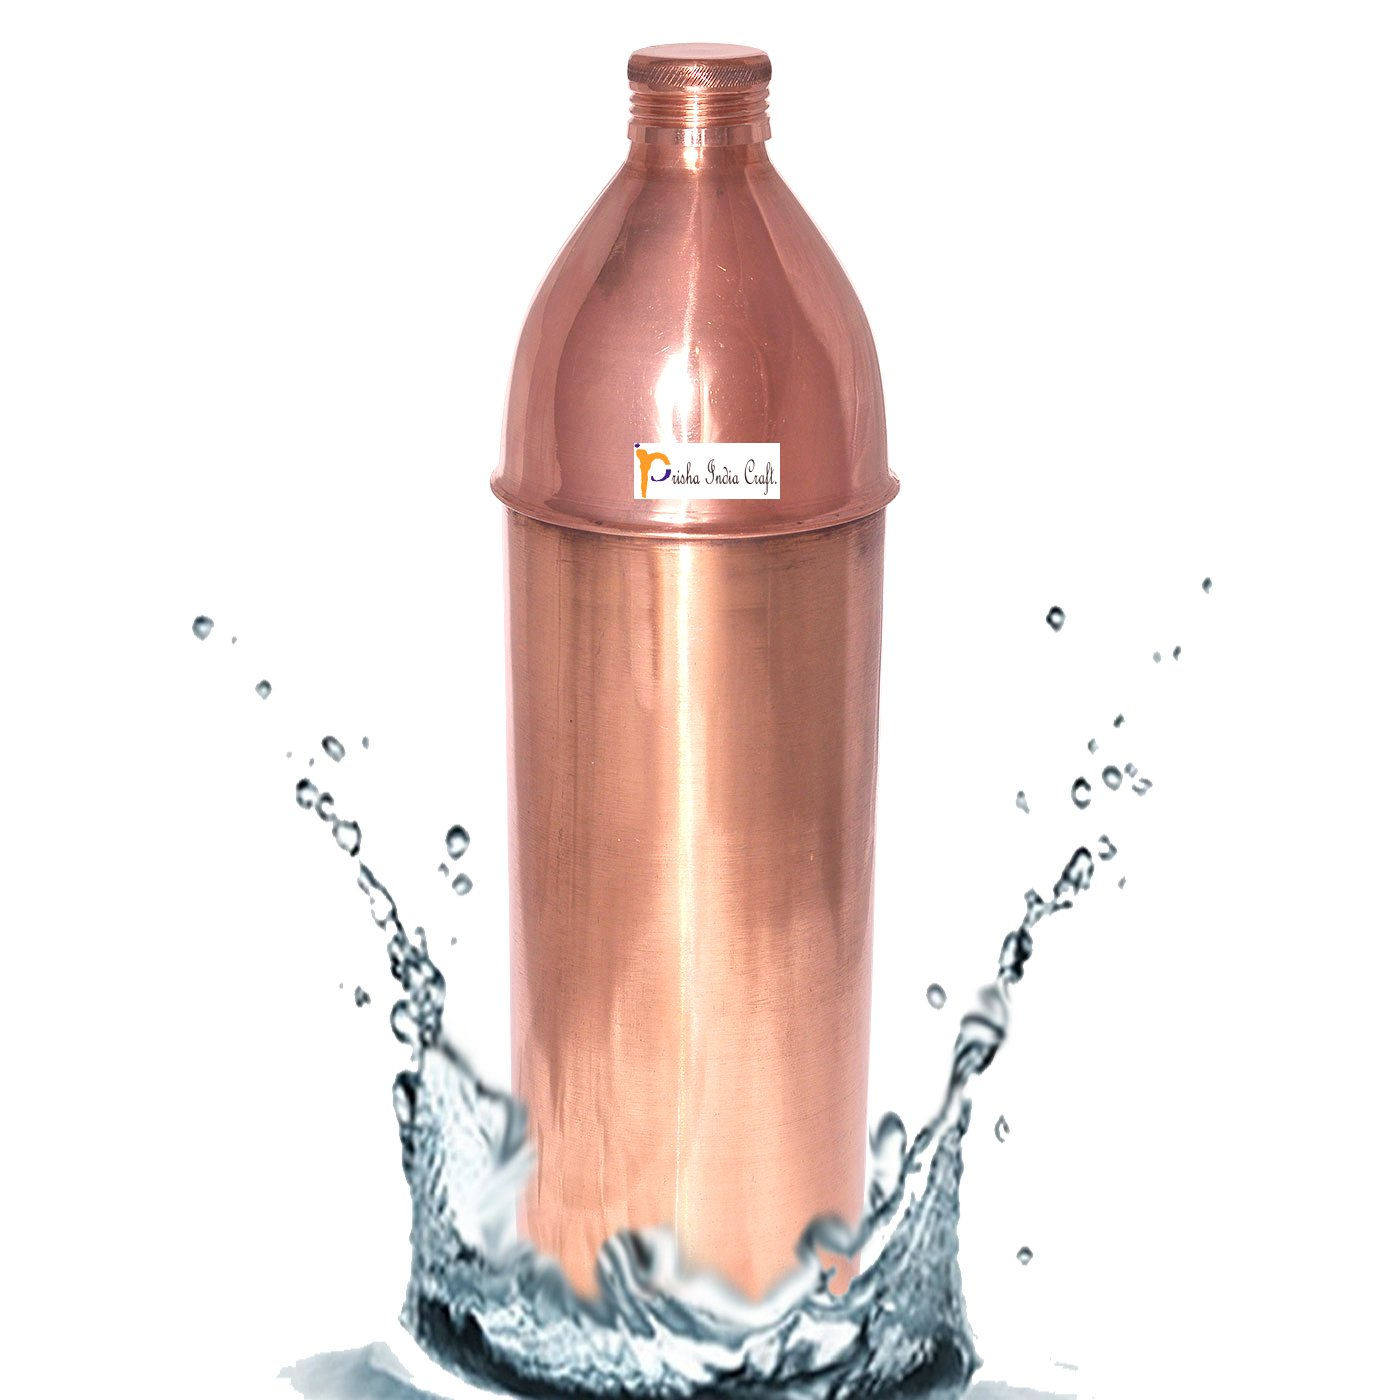 Prisha India Pure Copper Water Bottle High Quality for Ayurvedic Health Benefits Prisha India Craft